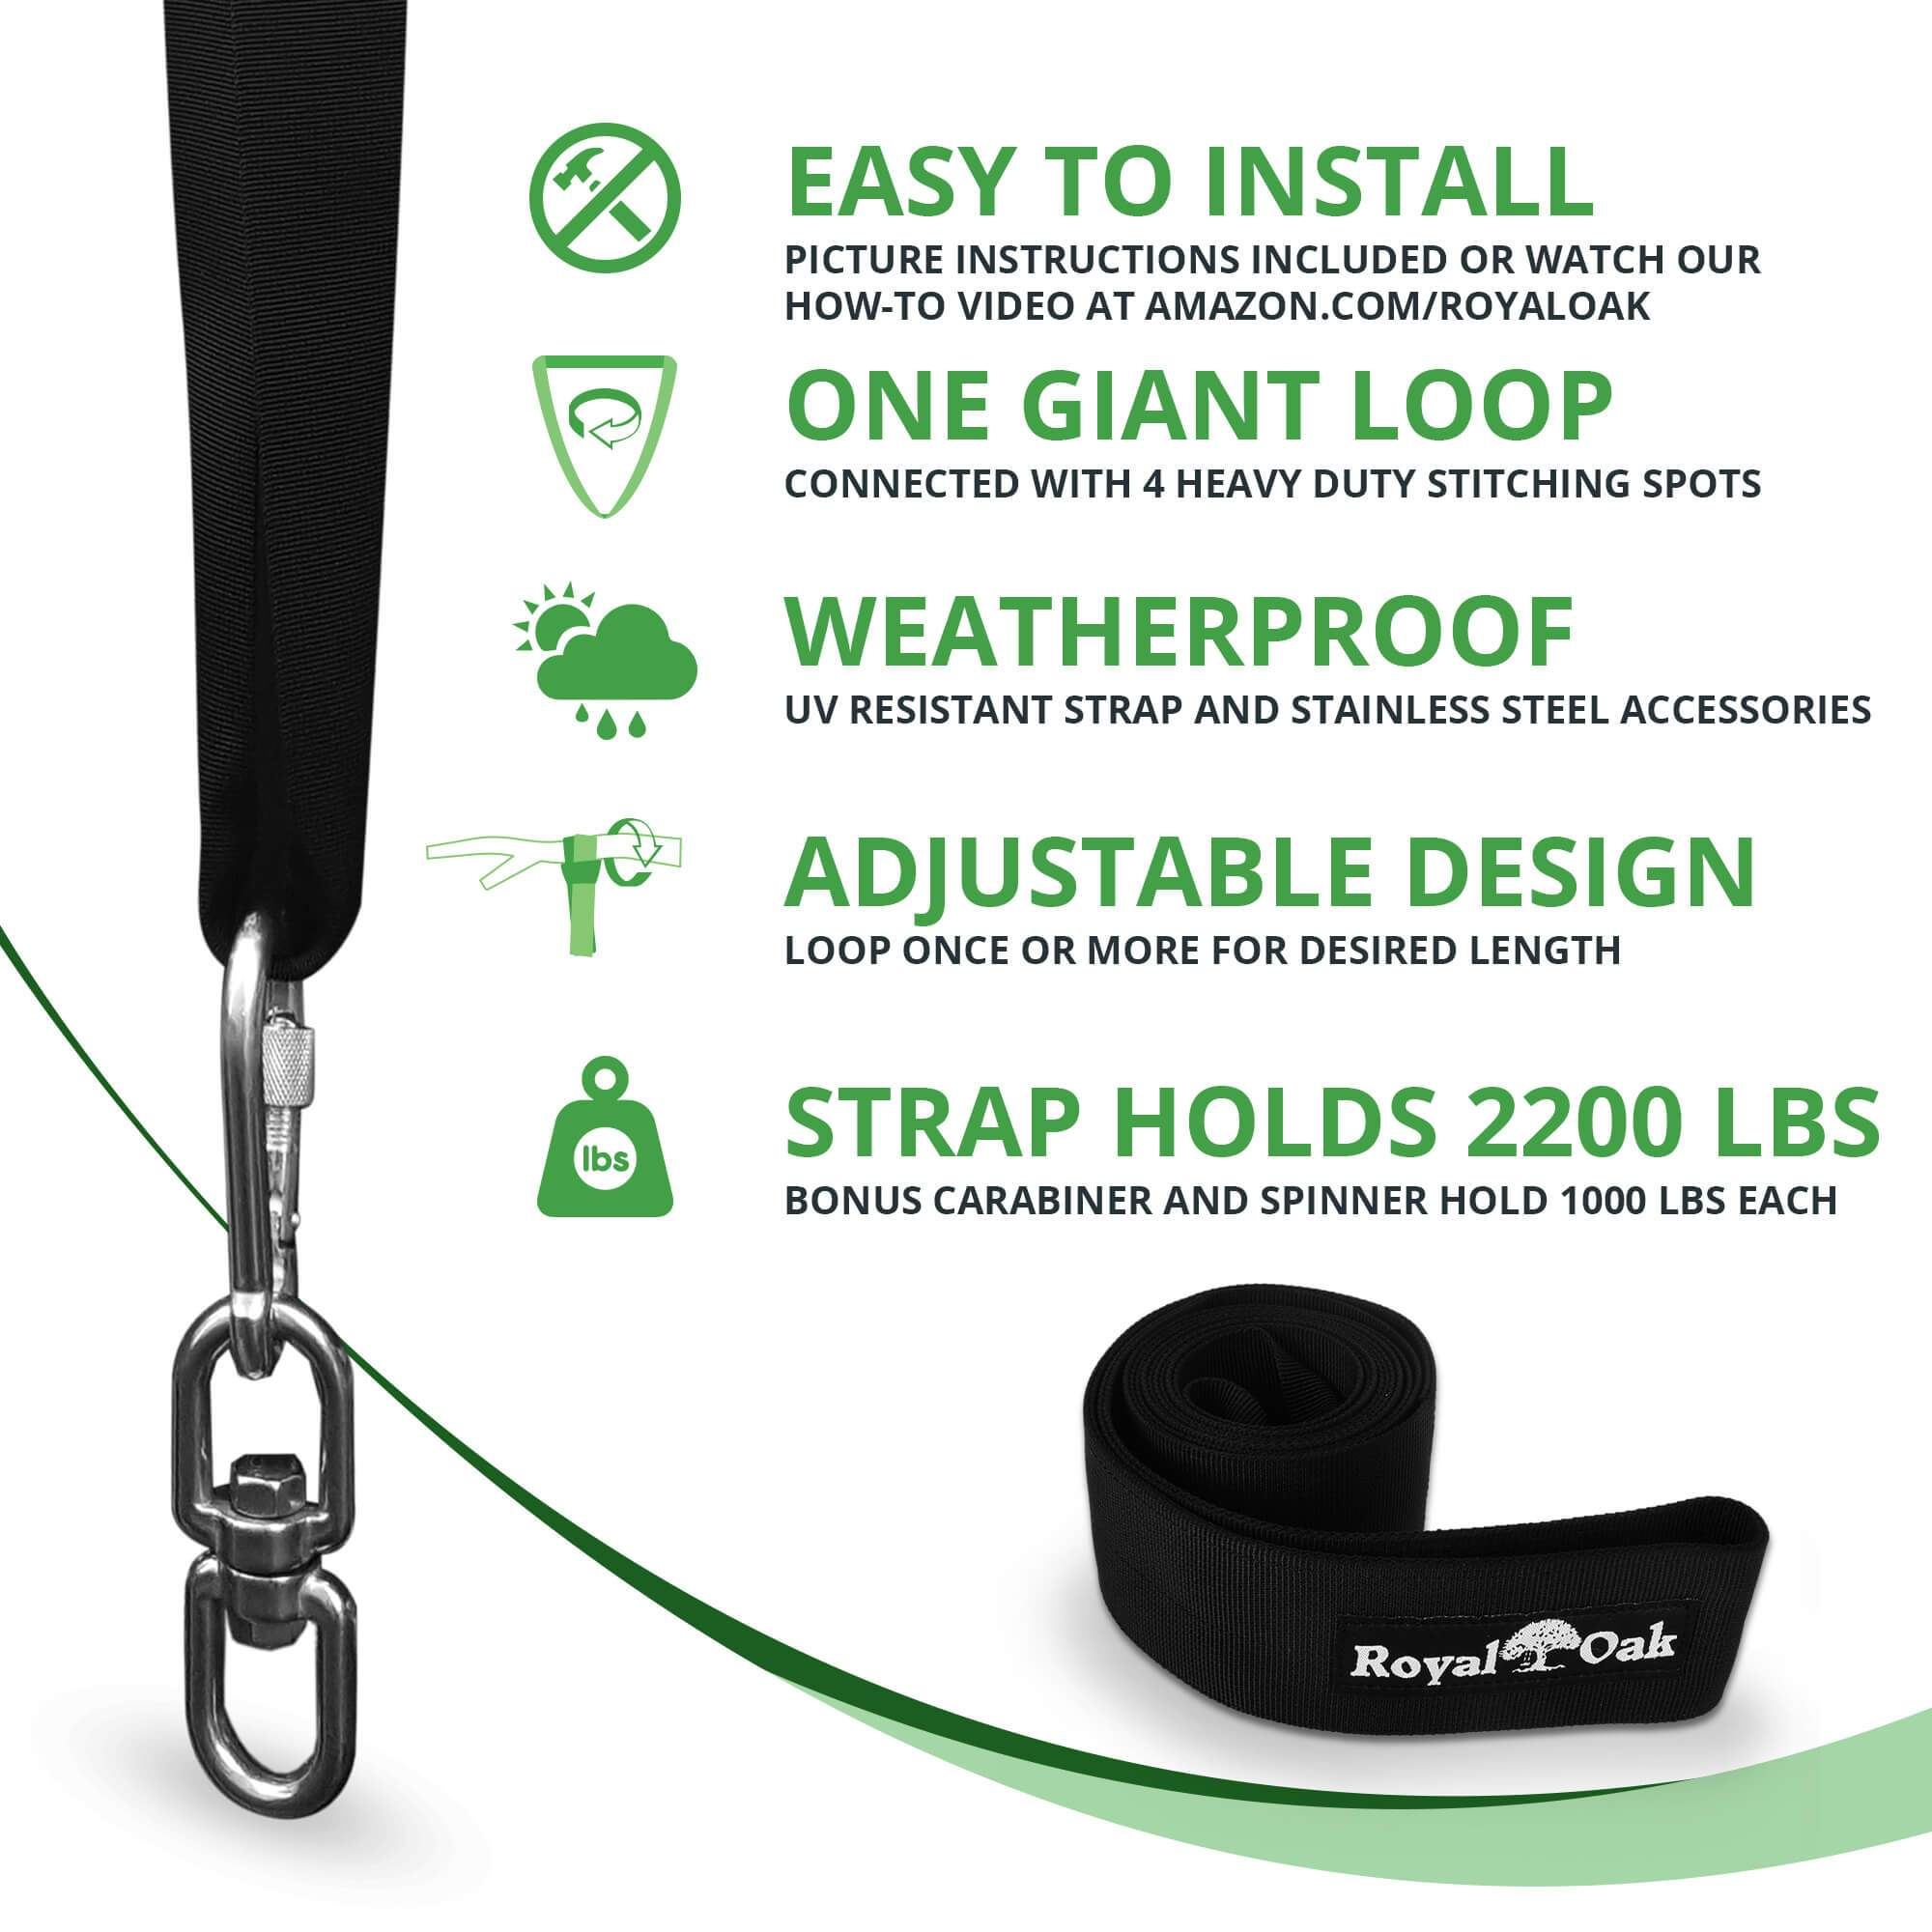 Best Tree Swing Hanging Kit Large Carabiners /& D Rings DCAL Trading Easy 30 Sec Install on Outdoor Toys Fits Hammocks /& Most Swing Seats Safe Better Than Chain or Rope Two 5 ft Tree Straps Hold 2000 lb